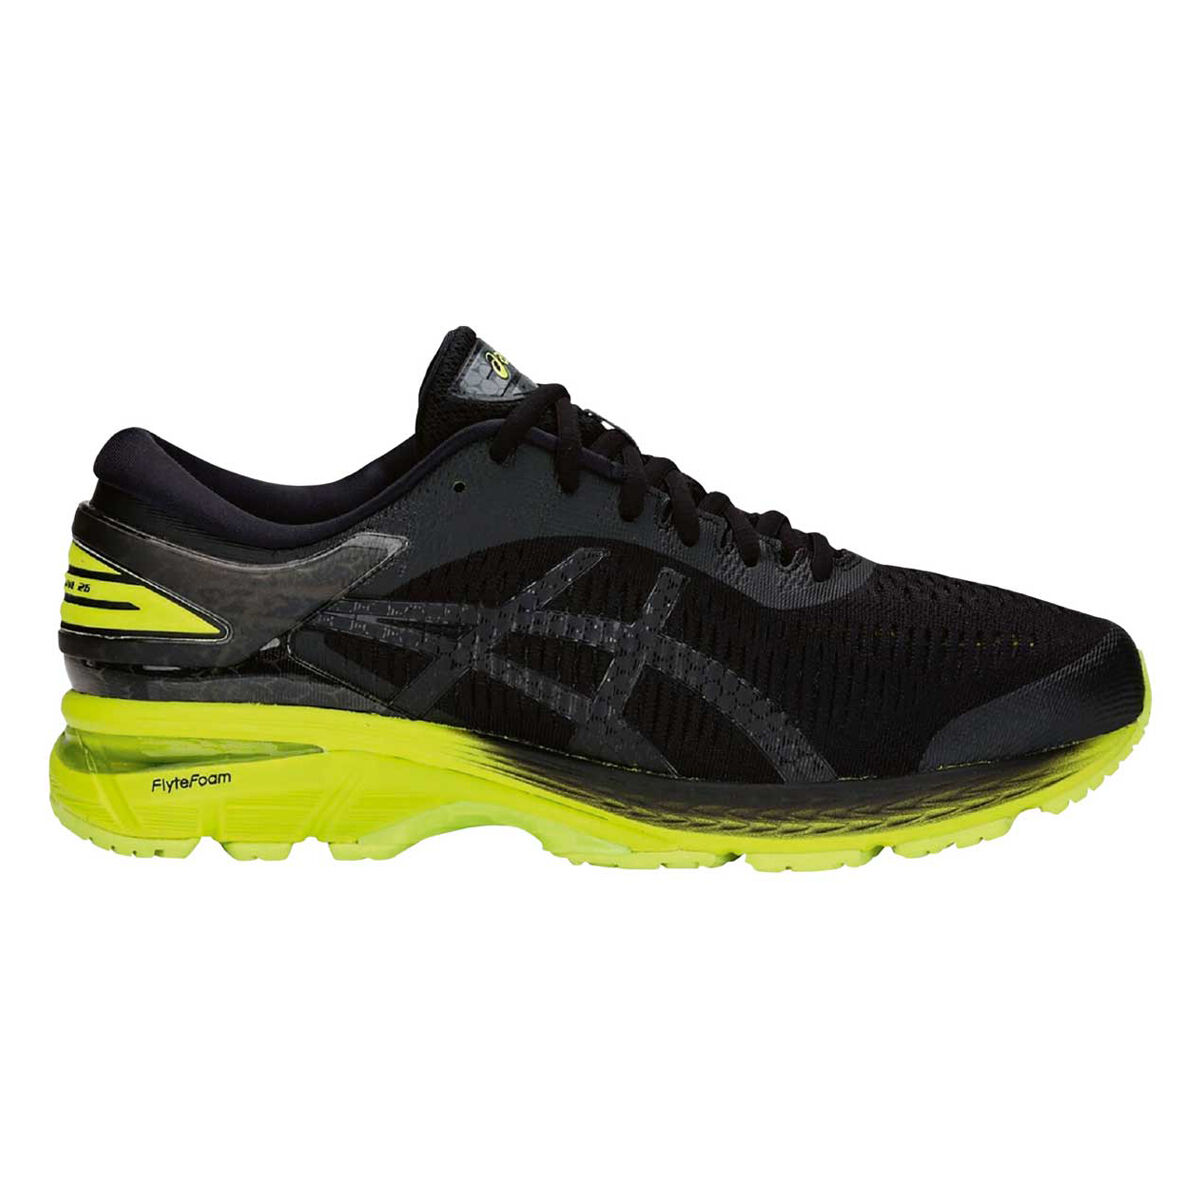 ade58d240111 ... closeout asics gel kayano 25 mens running shoes black lime us 7 black  lime be364 82ea8